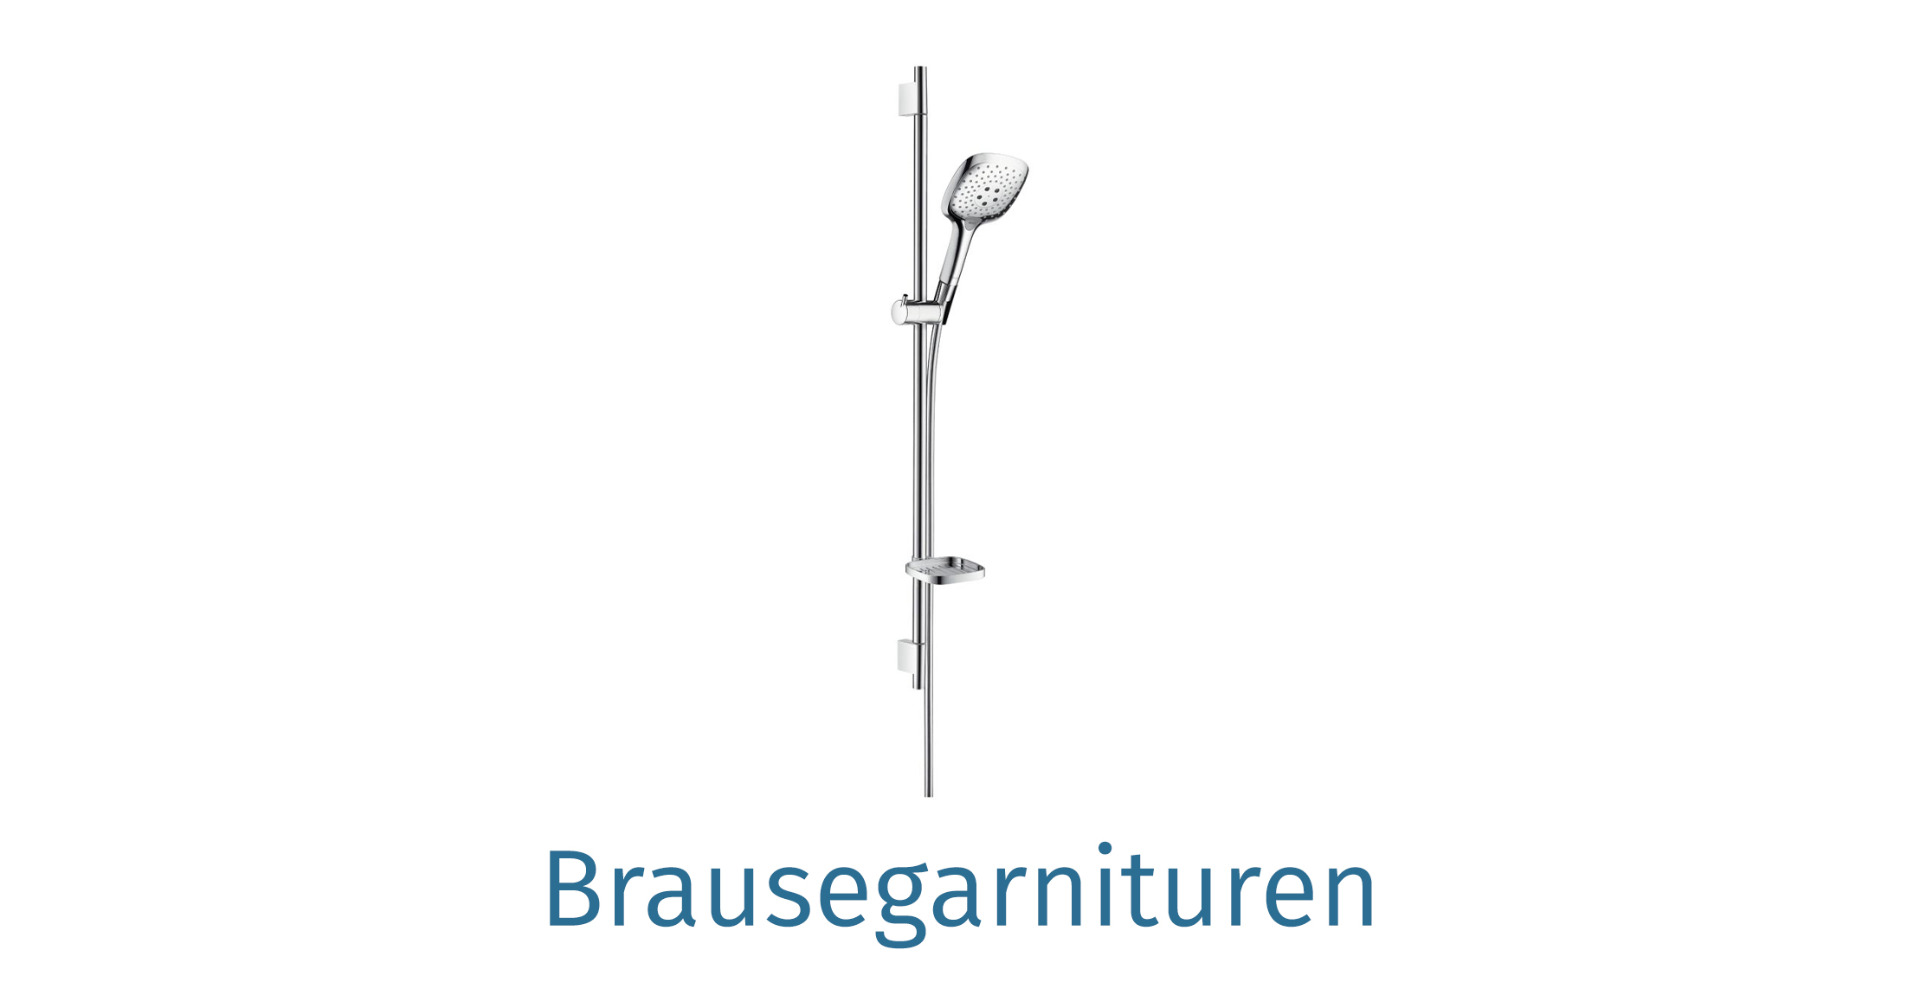 Brausegarnituren